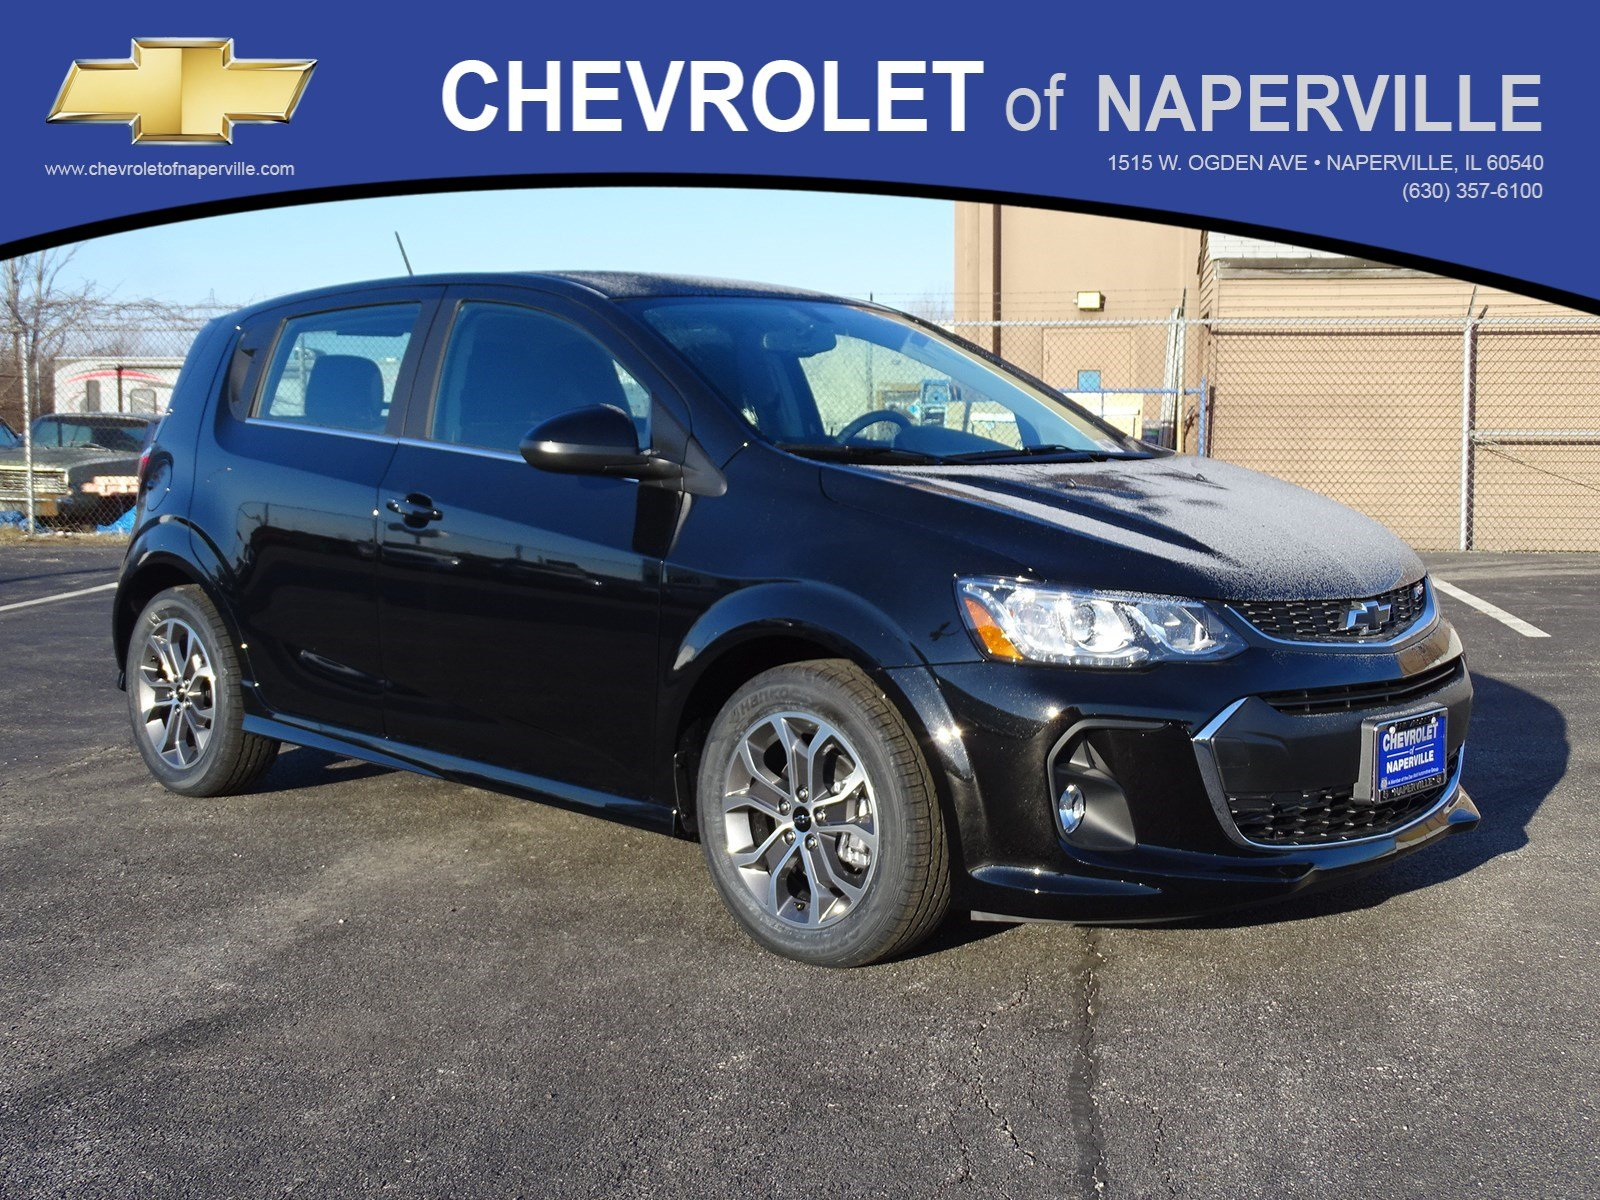 used chevrolet fwd naperville lt of pre inventory cruze owned car in